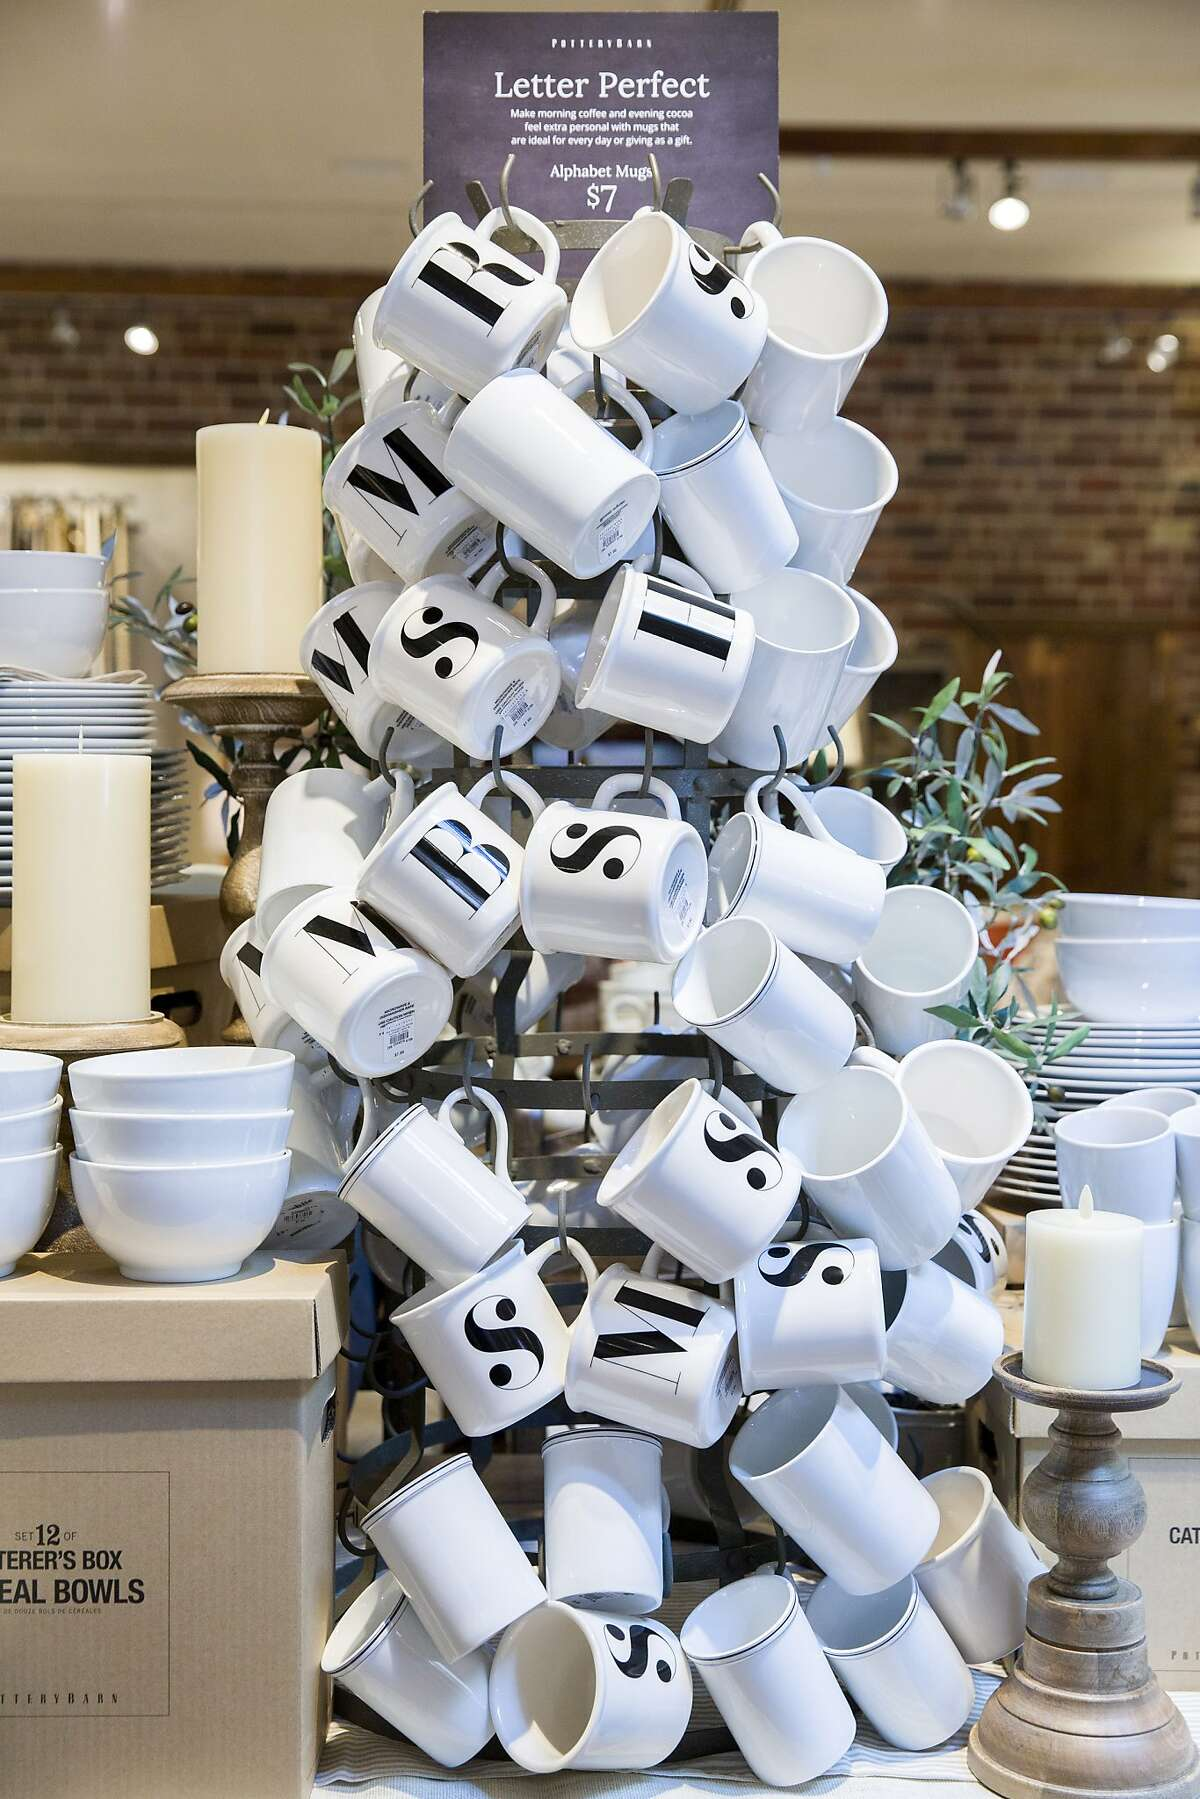 The cups for sale at the Pottery Barn on Tuesday, Aug. 1, 2017, in Corte Madera, Calif.